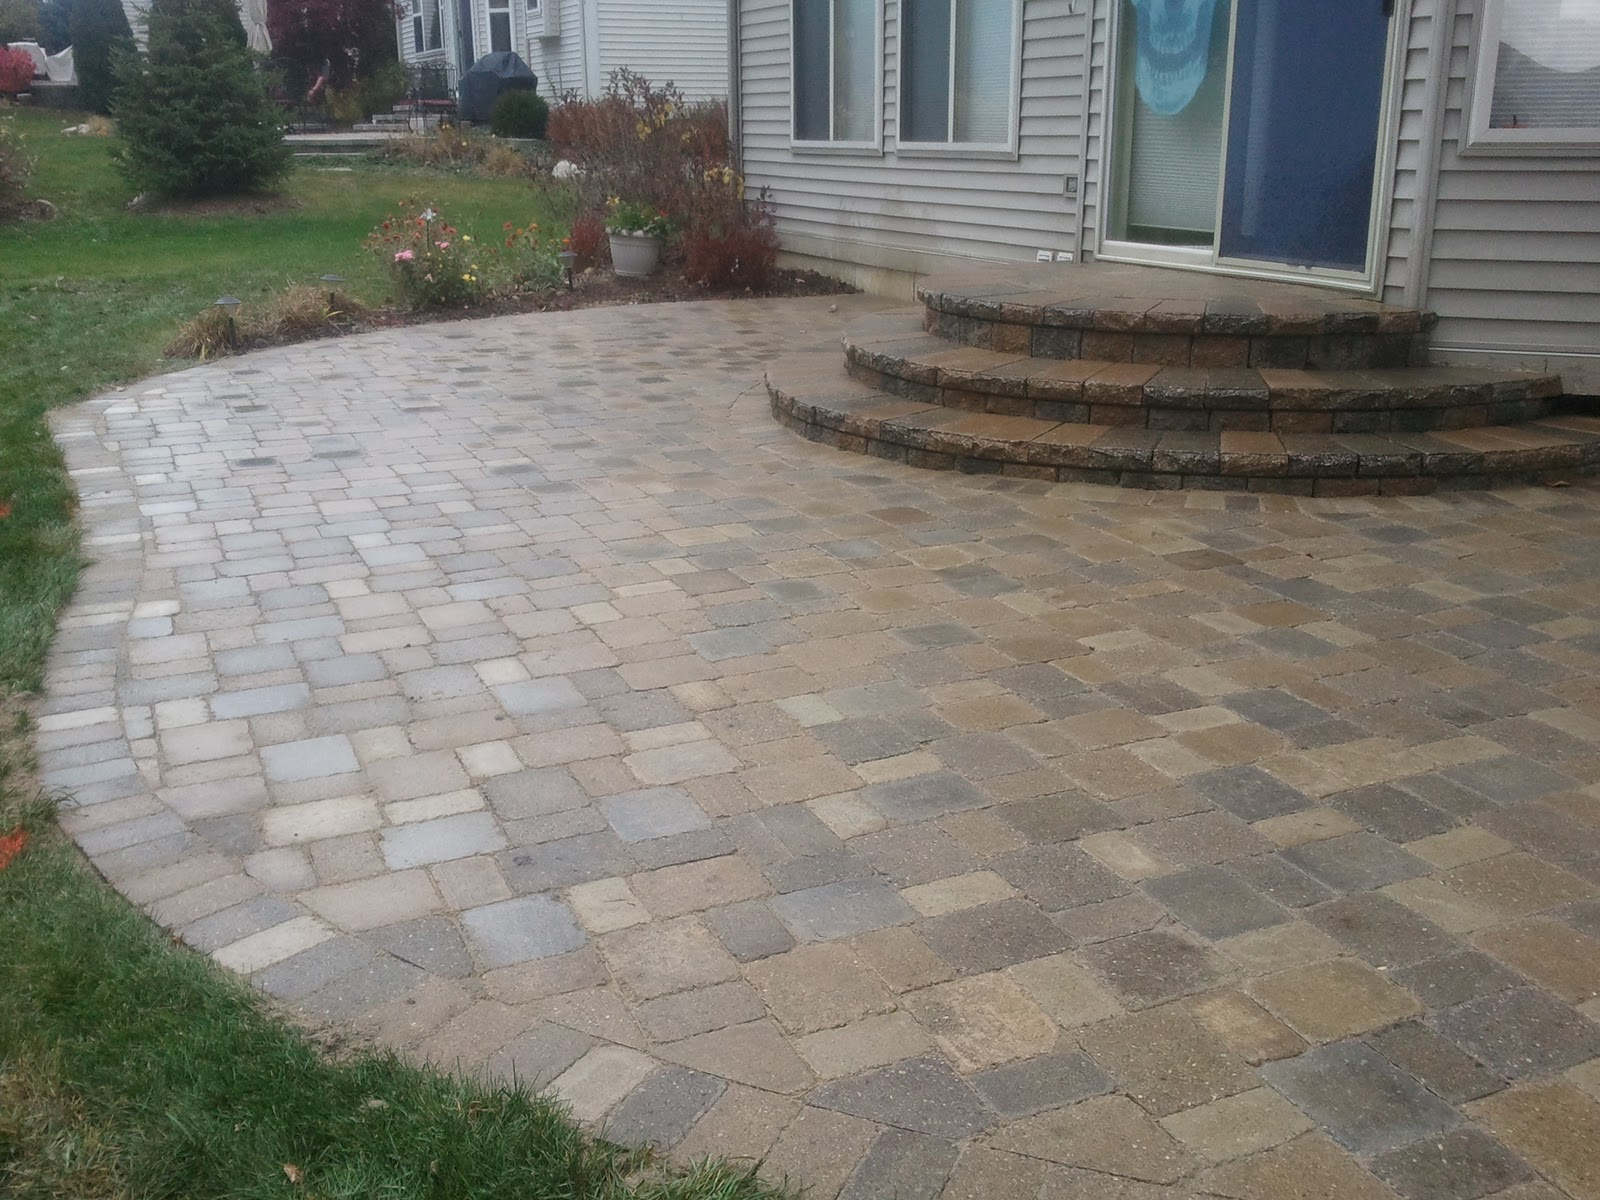 Patio stone pavers patio design ideas for Small stone patio ideas